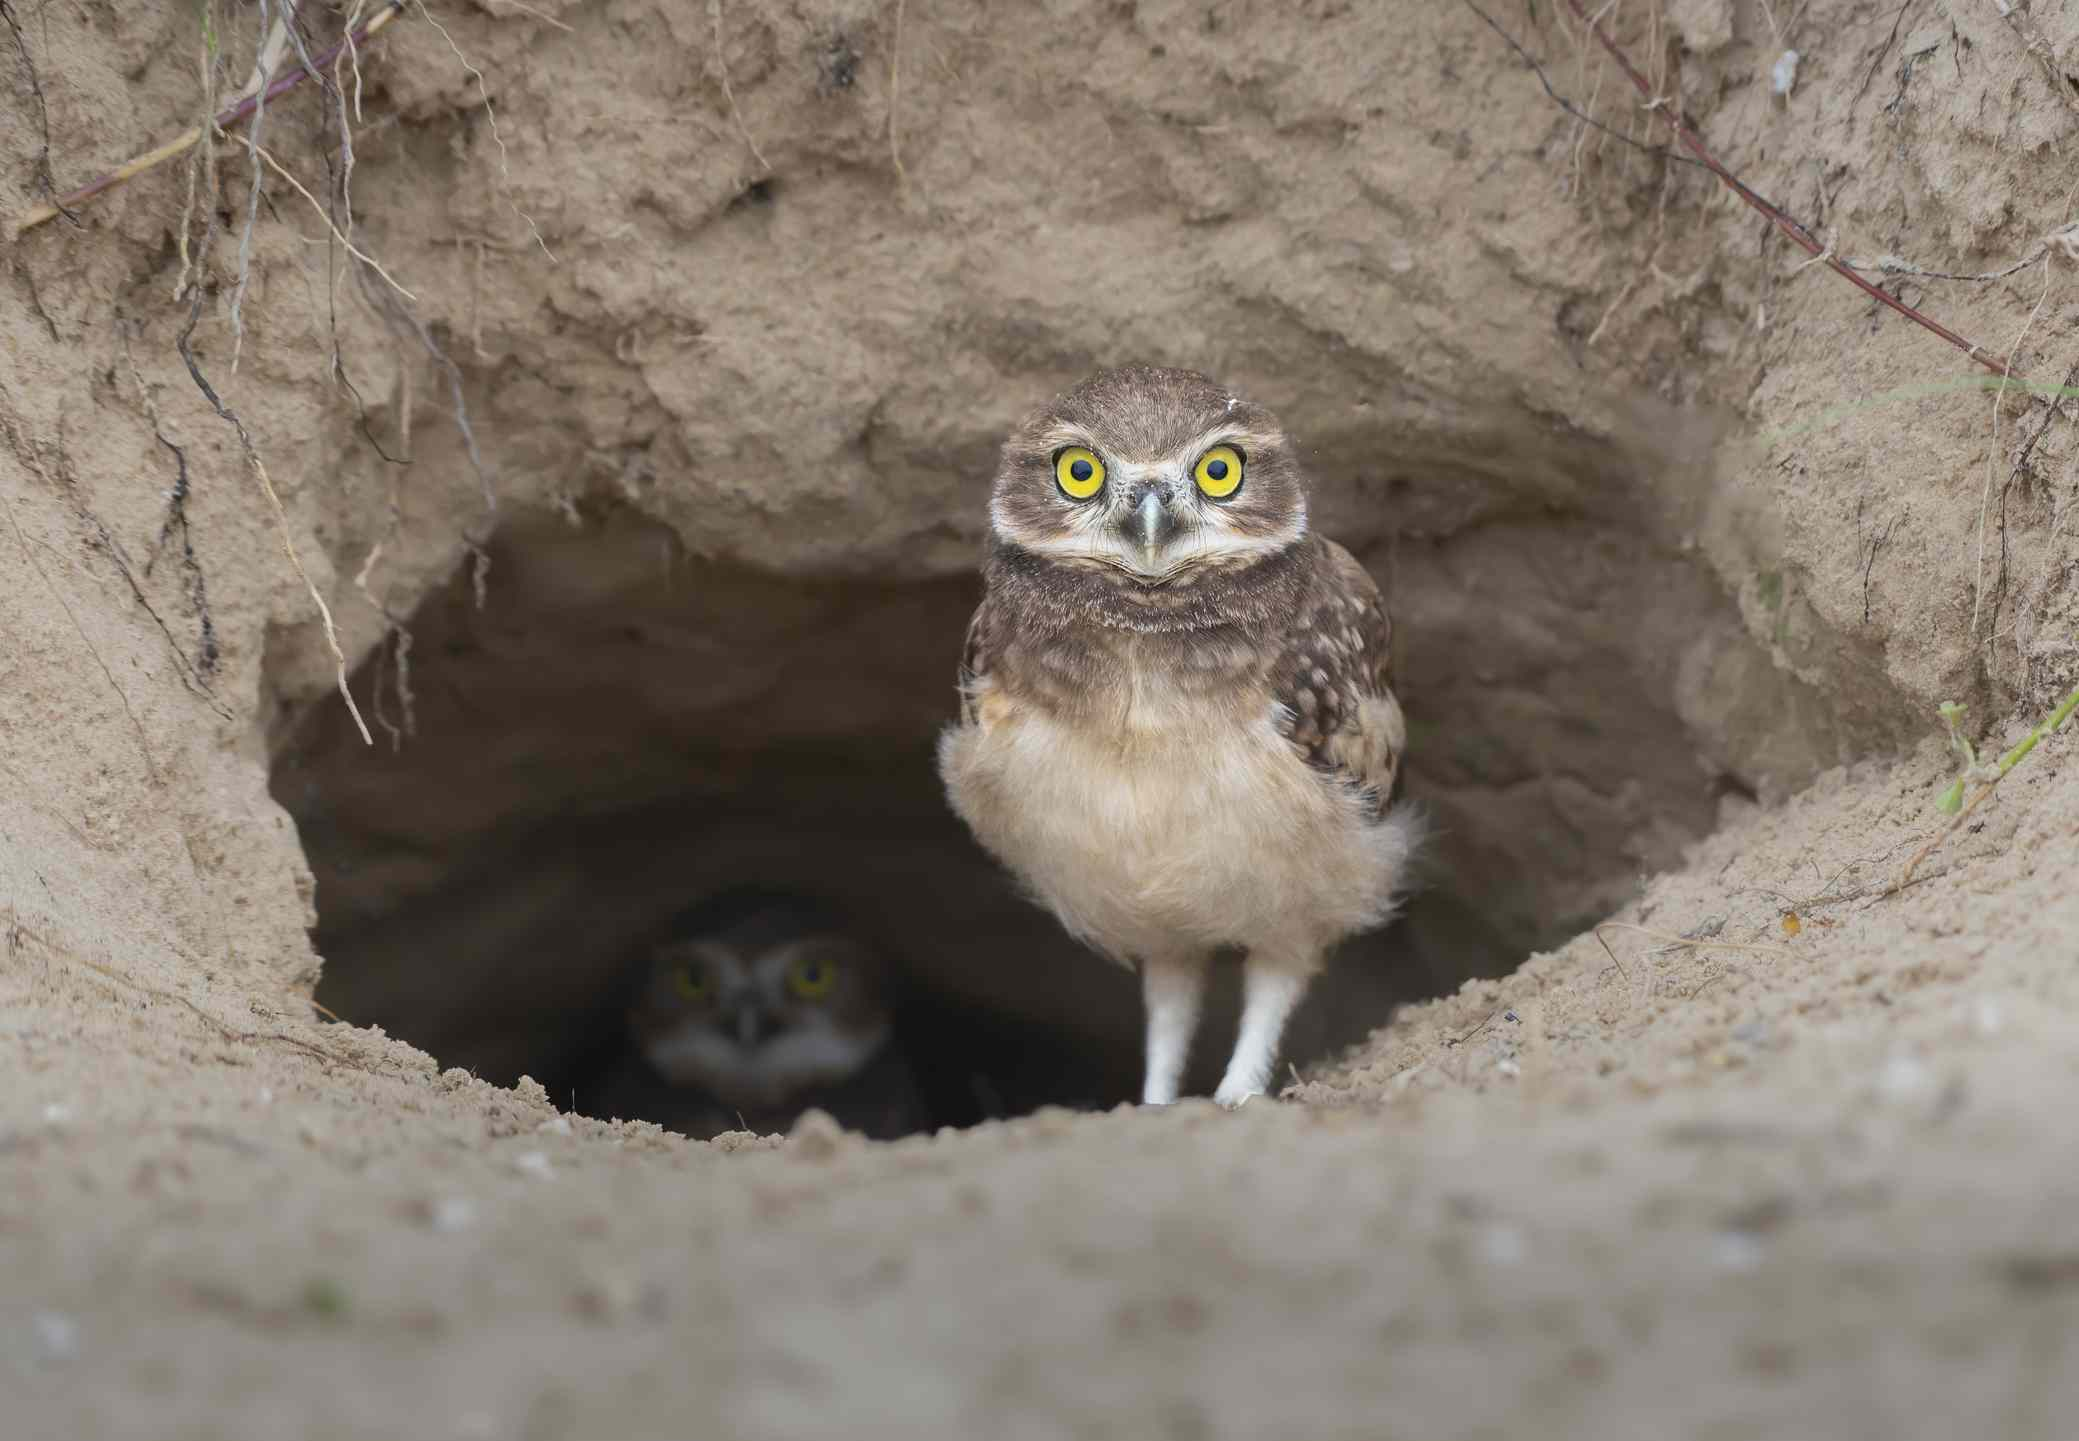 Portrait of burrowing great horned owl in hole,Morro dos Conventos,Santa Catarina,Brazil